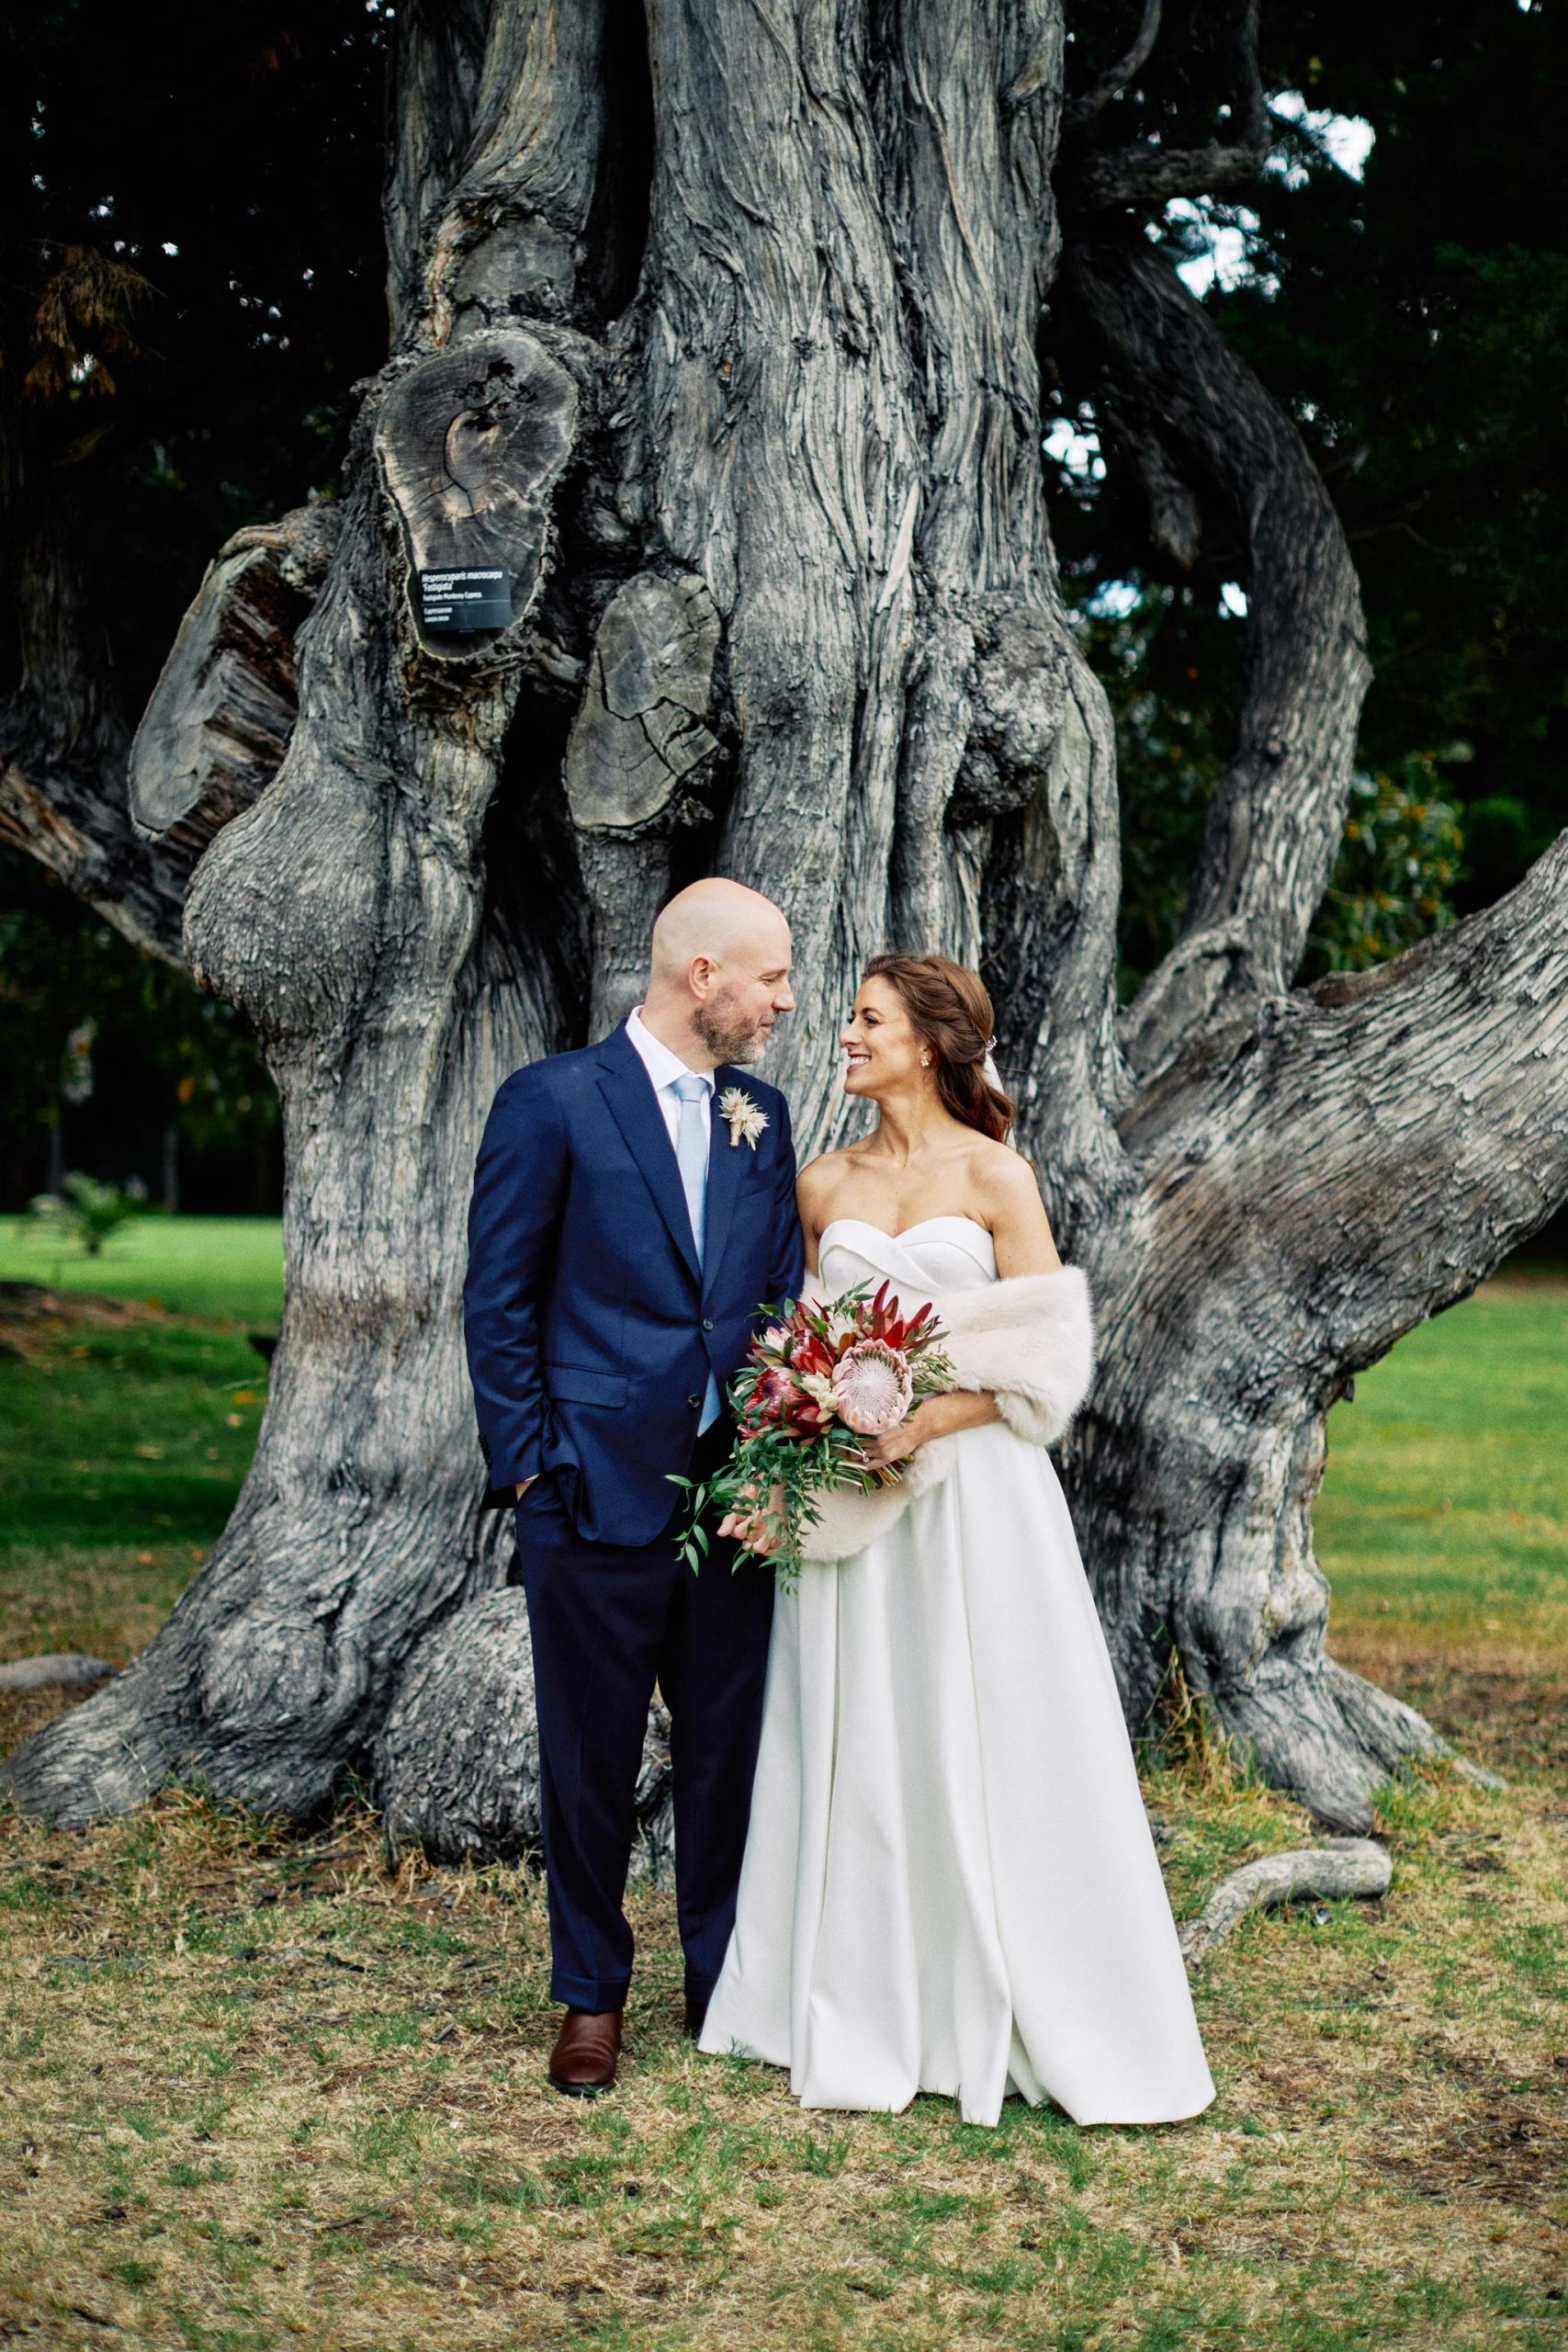 Melbourne Royal Botanical Garden Wedding Ceremony Portrait bride groom tree